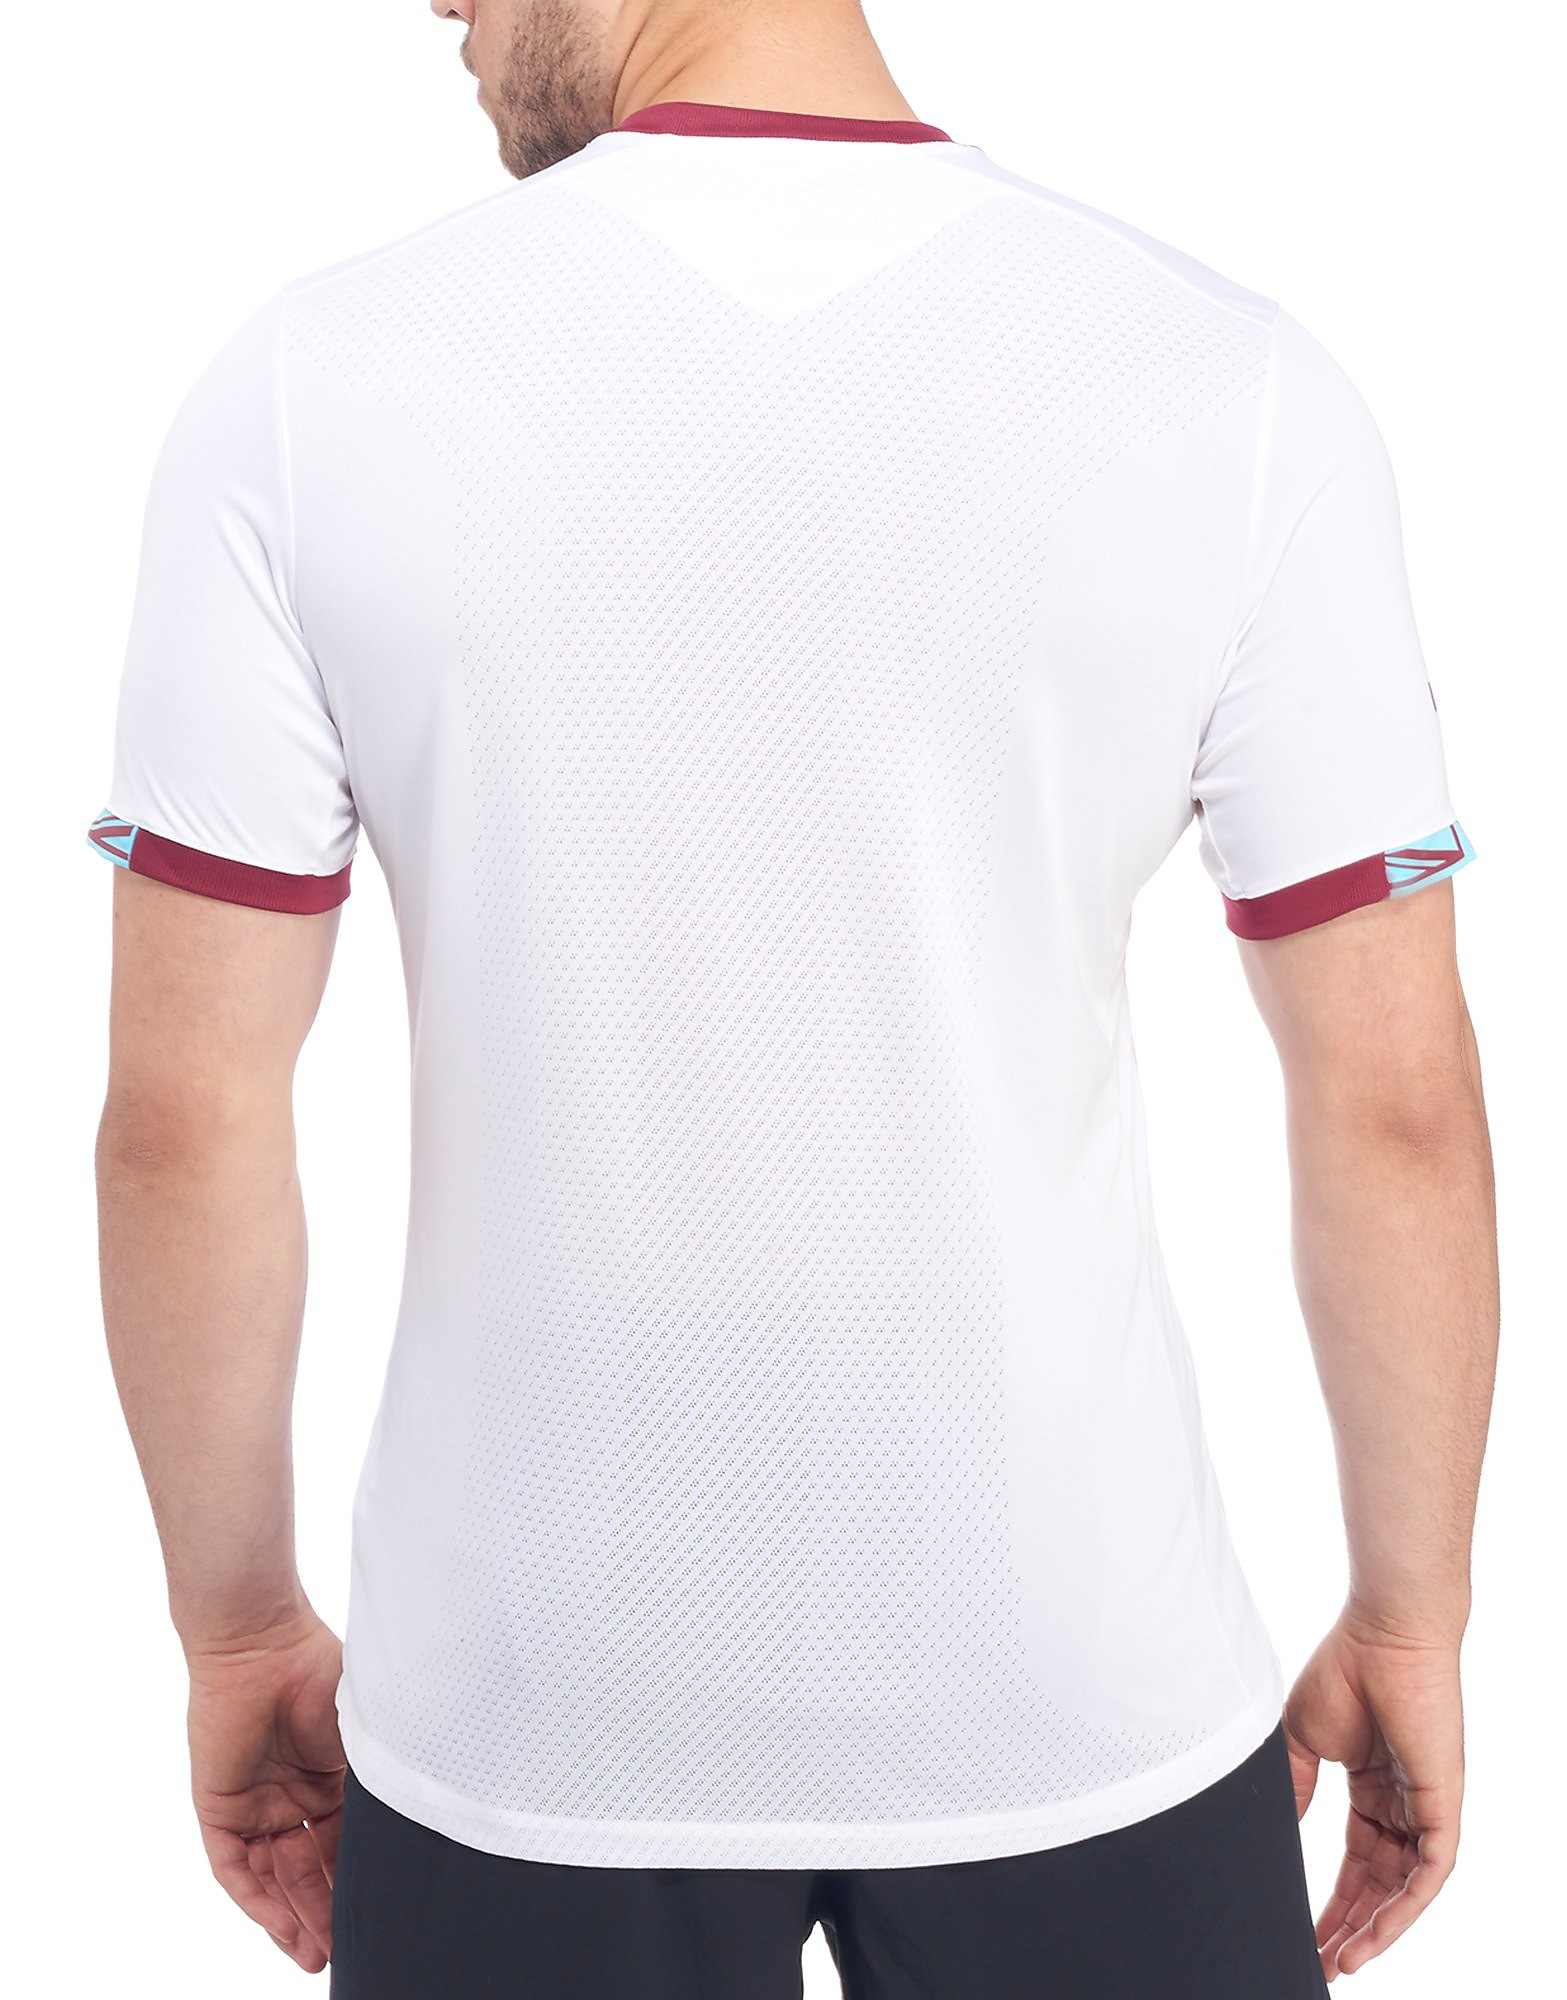 Umbro West Ham United 2016/17 Away Shirt